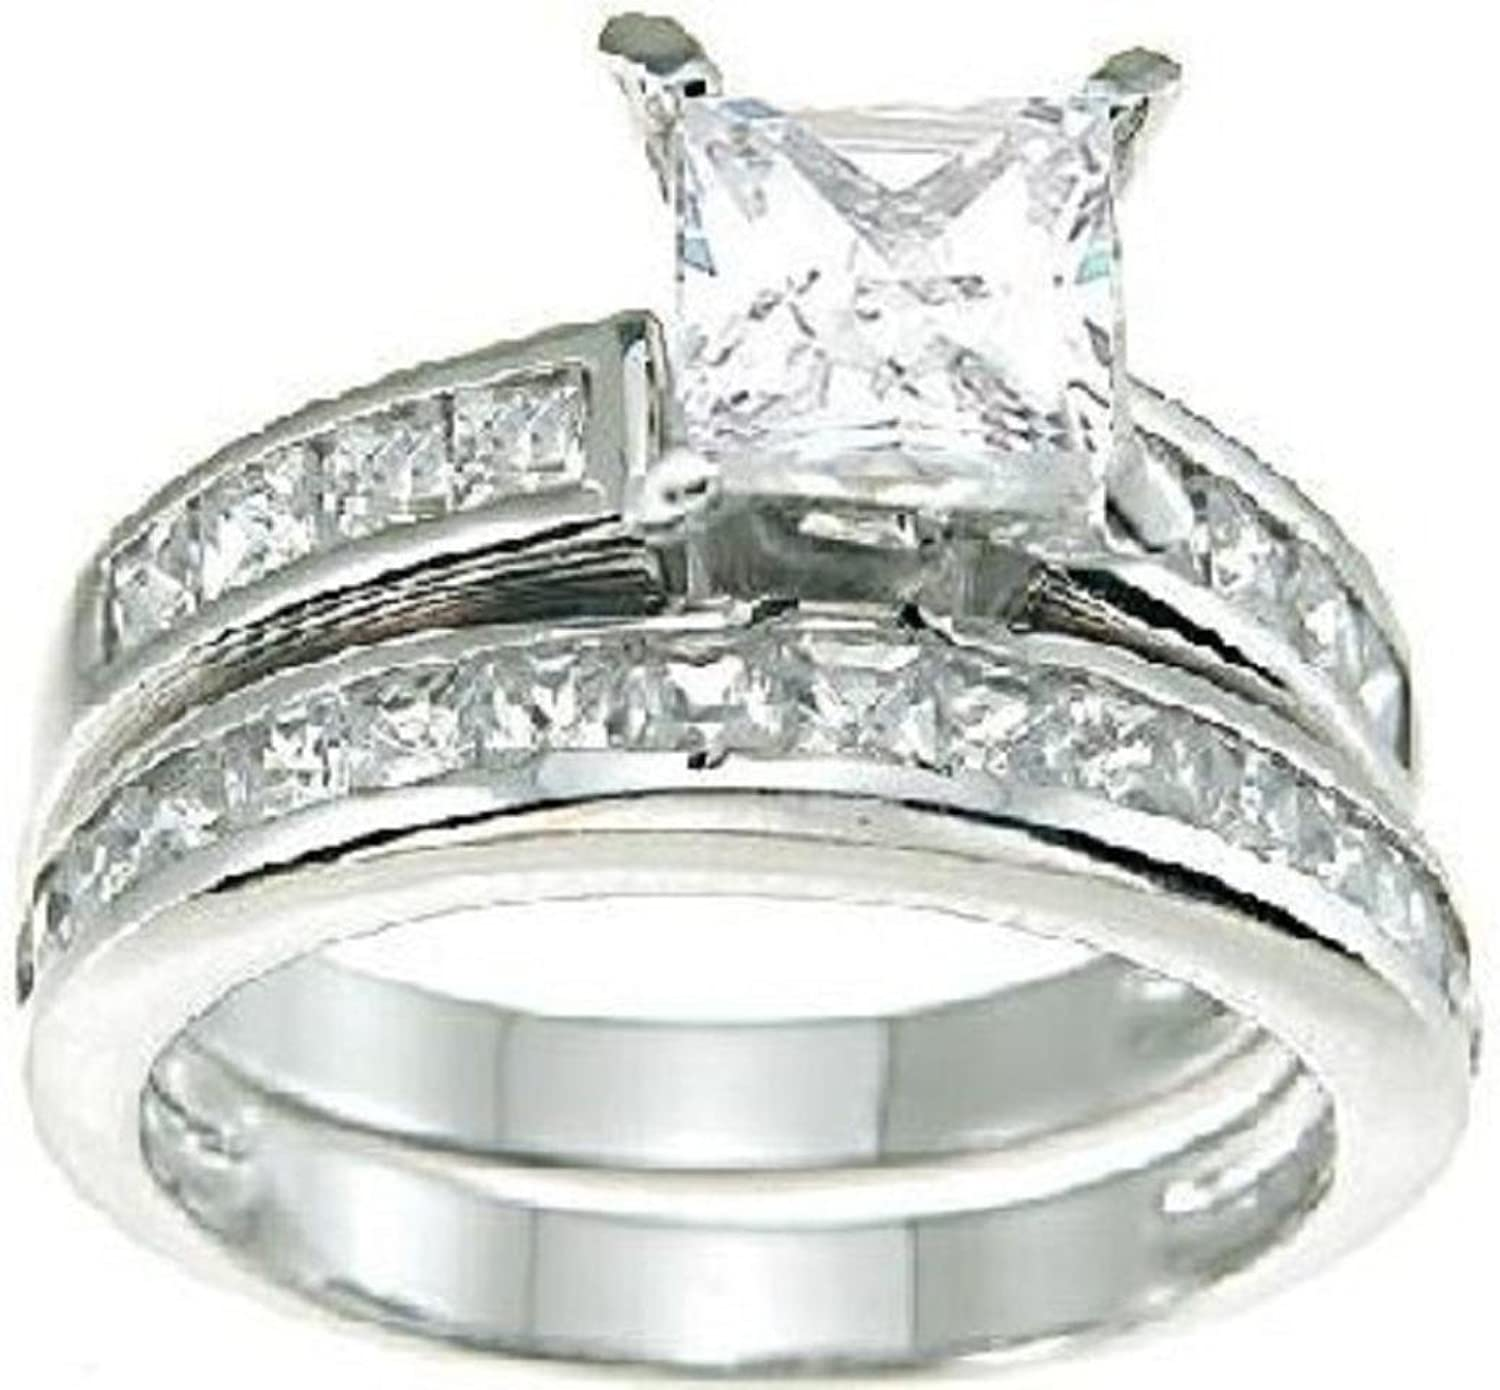 Amazon Princess Cut Wedding Band Engagement Ring Set in 925